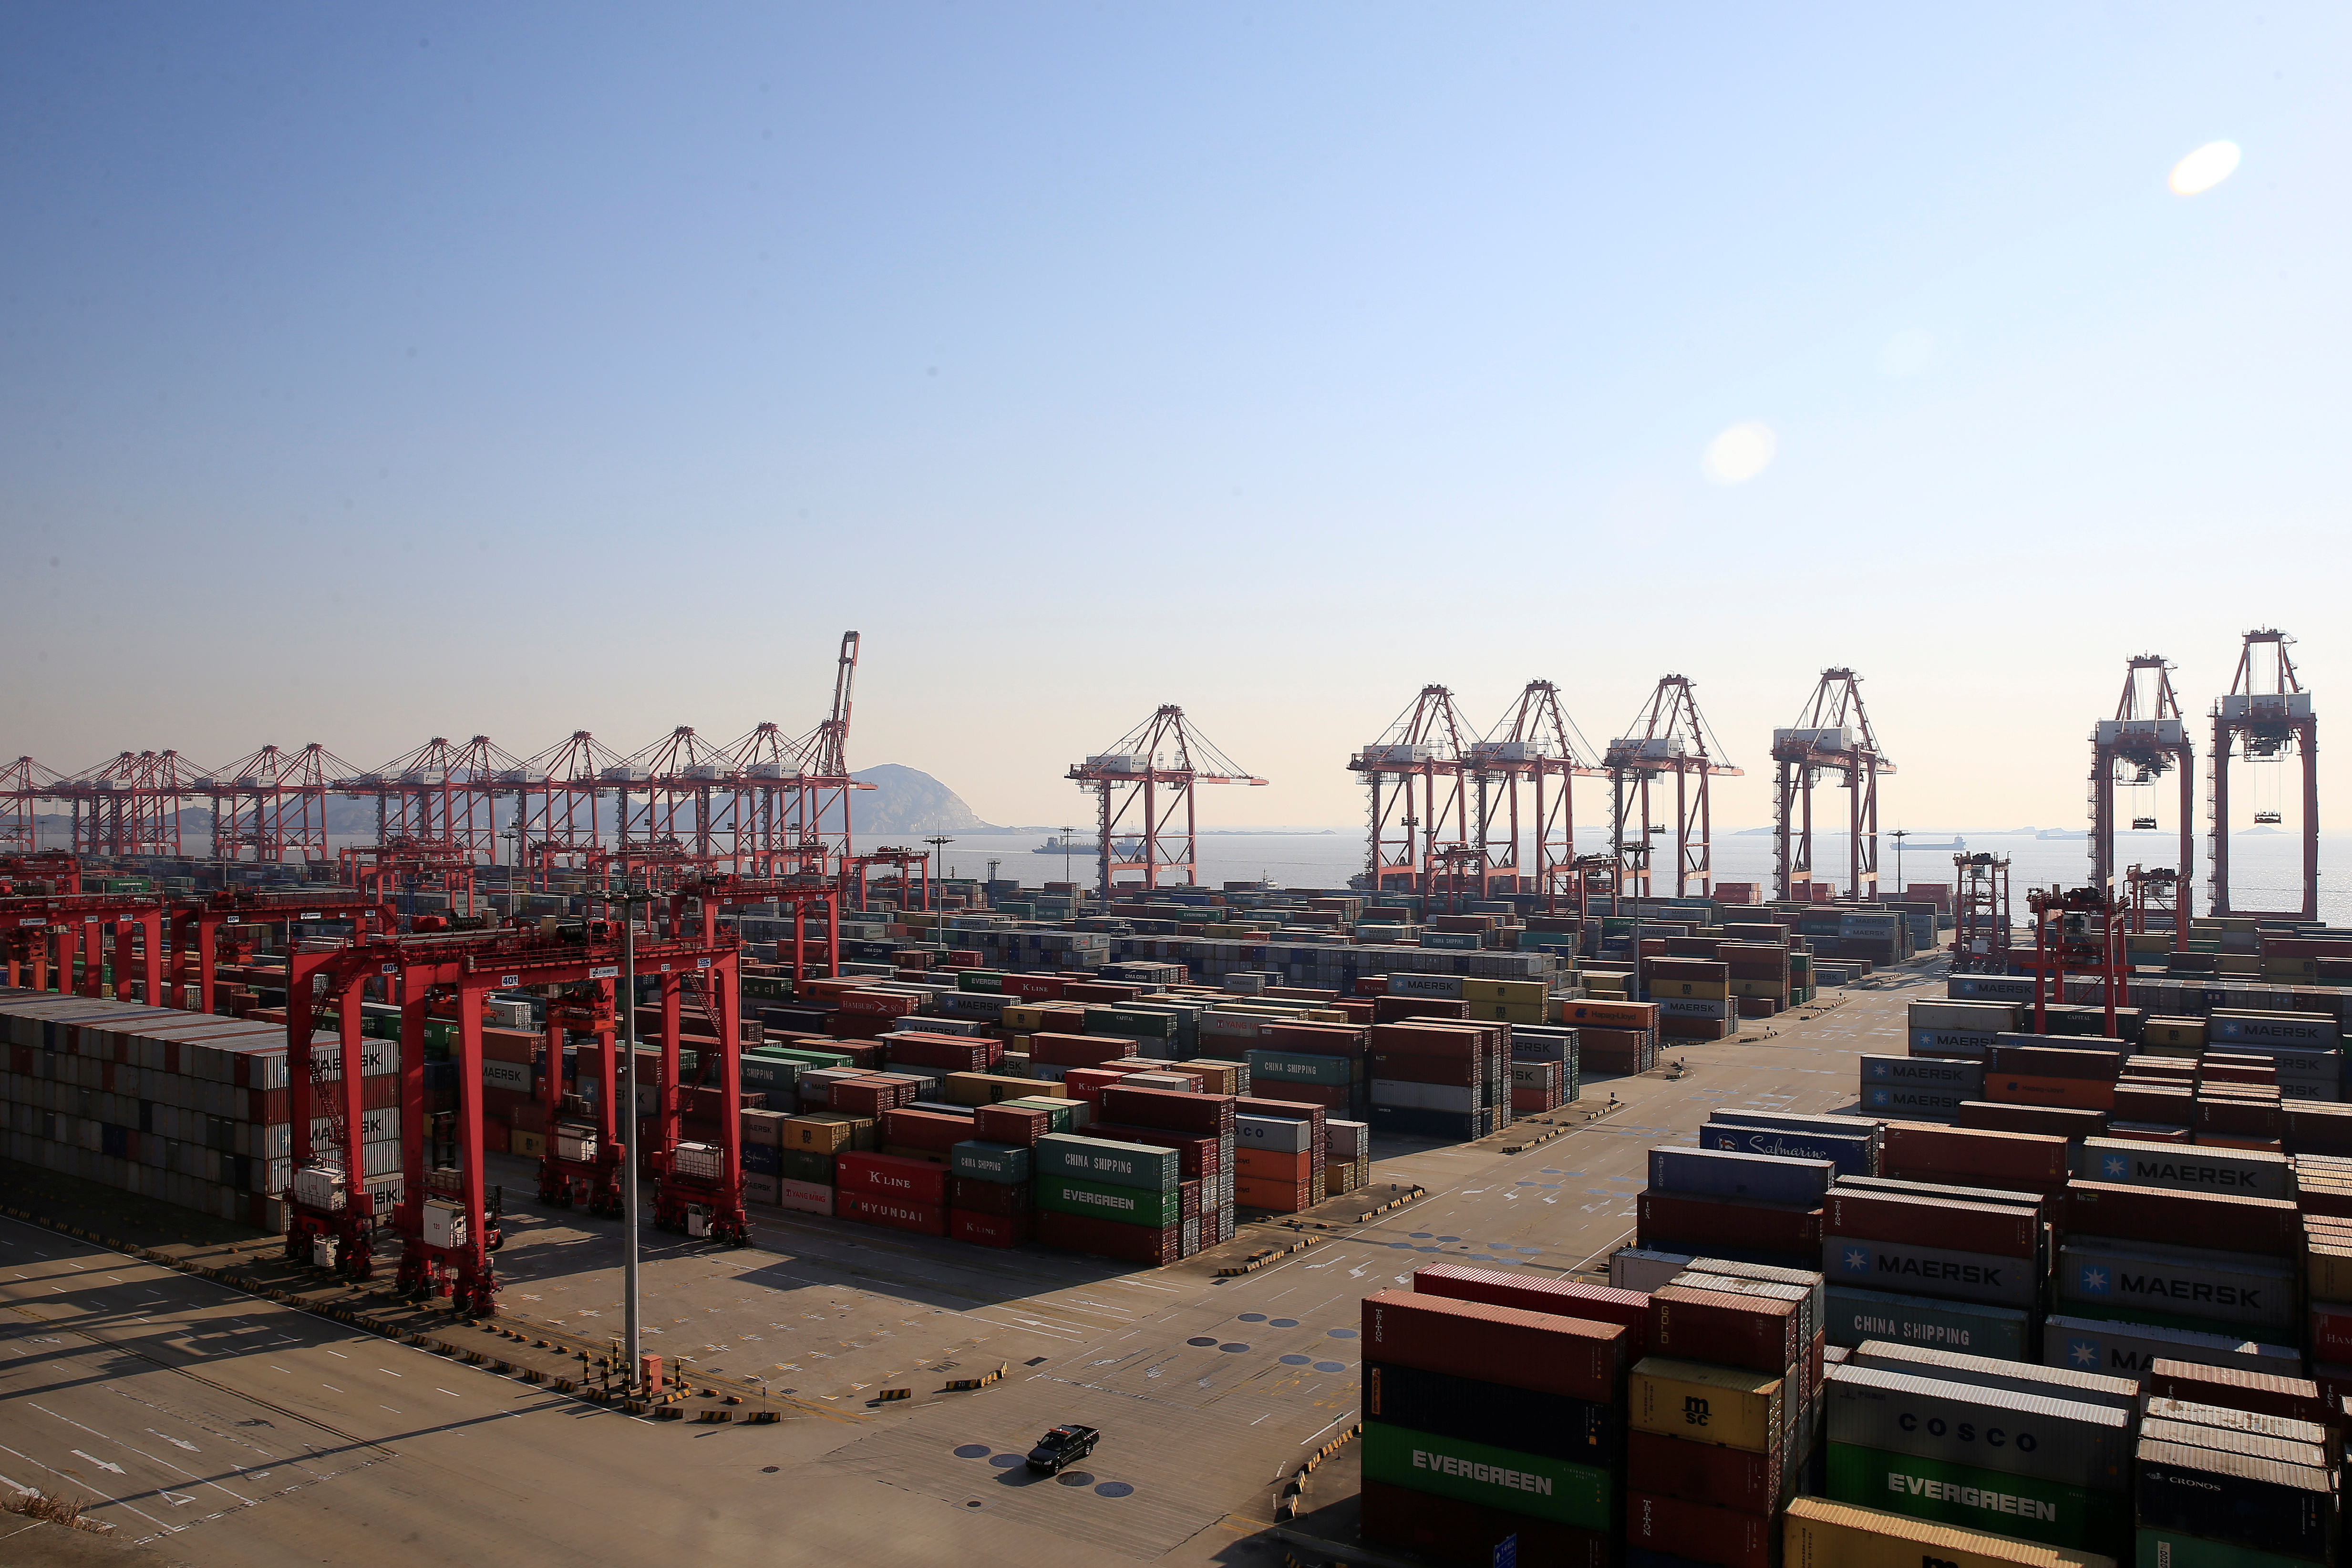 Containers are seen at the Yangshan Deep Water Port, part of the Shanghai Free Trade Zone, in Shanghai, China, February 13, 2017.